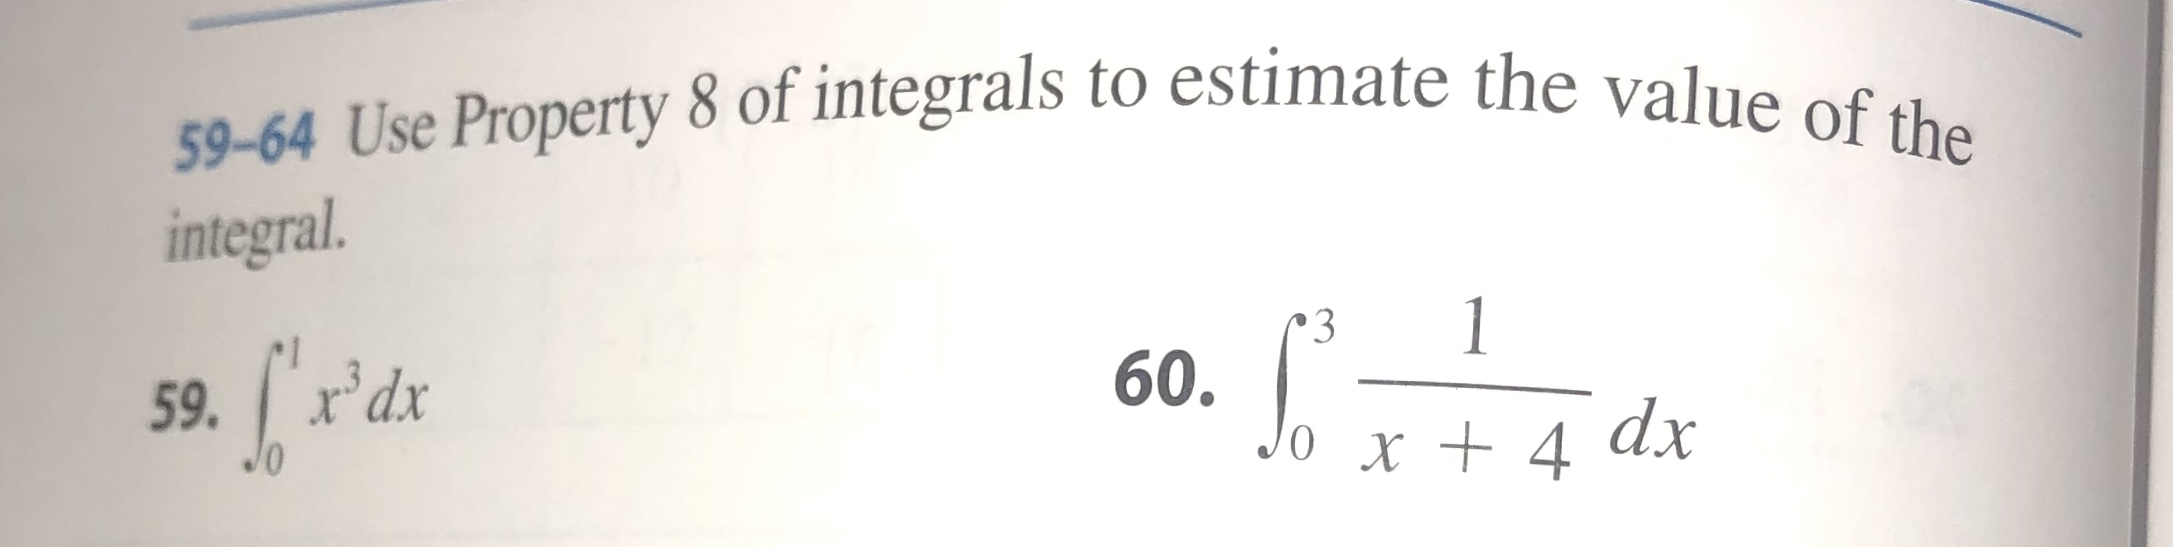 59-64 Use Property 8 of integrals to estimate the value of the integral 1 3 60. Jo x+ 4 59.r'dx dx 0